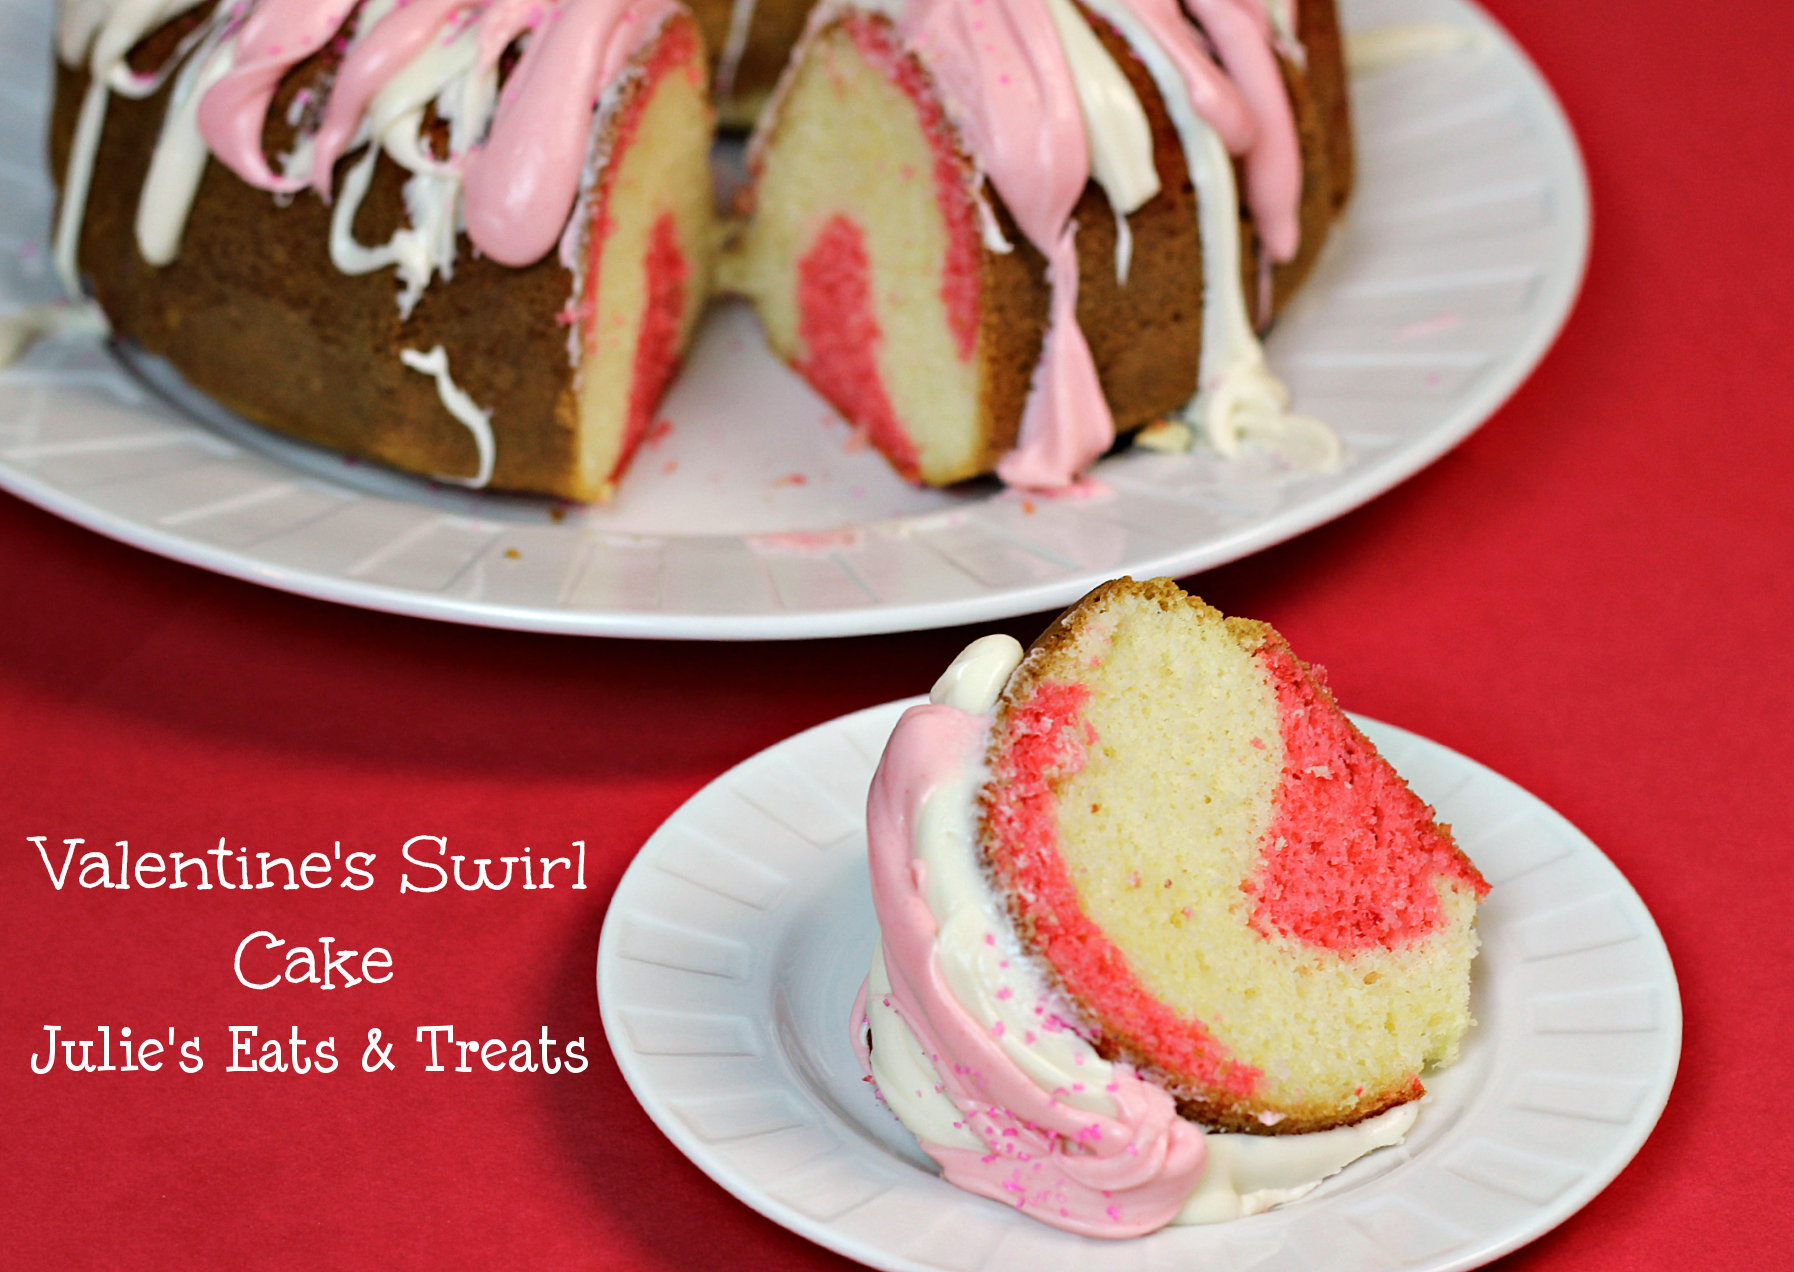 Valentine's Swirl Cake ~ Treat your Valentine's to a special treat ~ www.julieseatsandtreats.com #cake #recipe #Valentine's